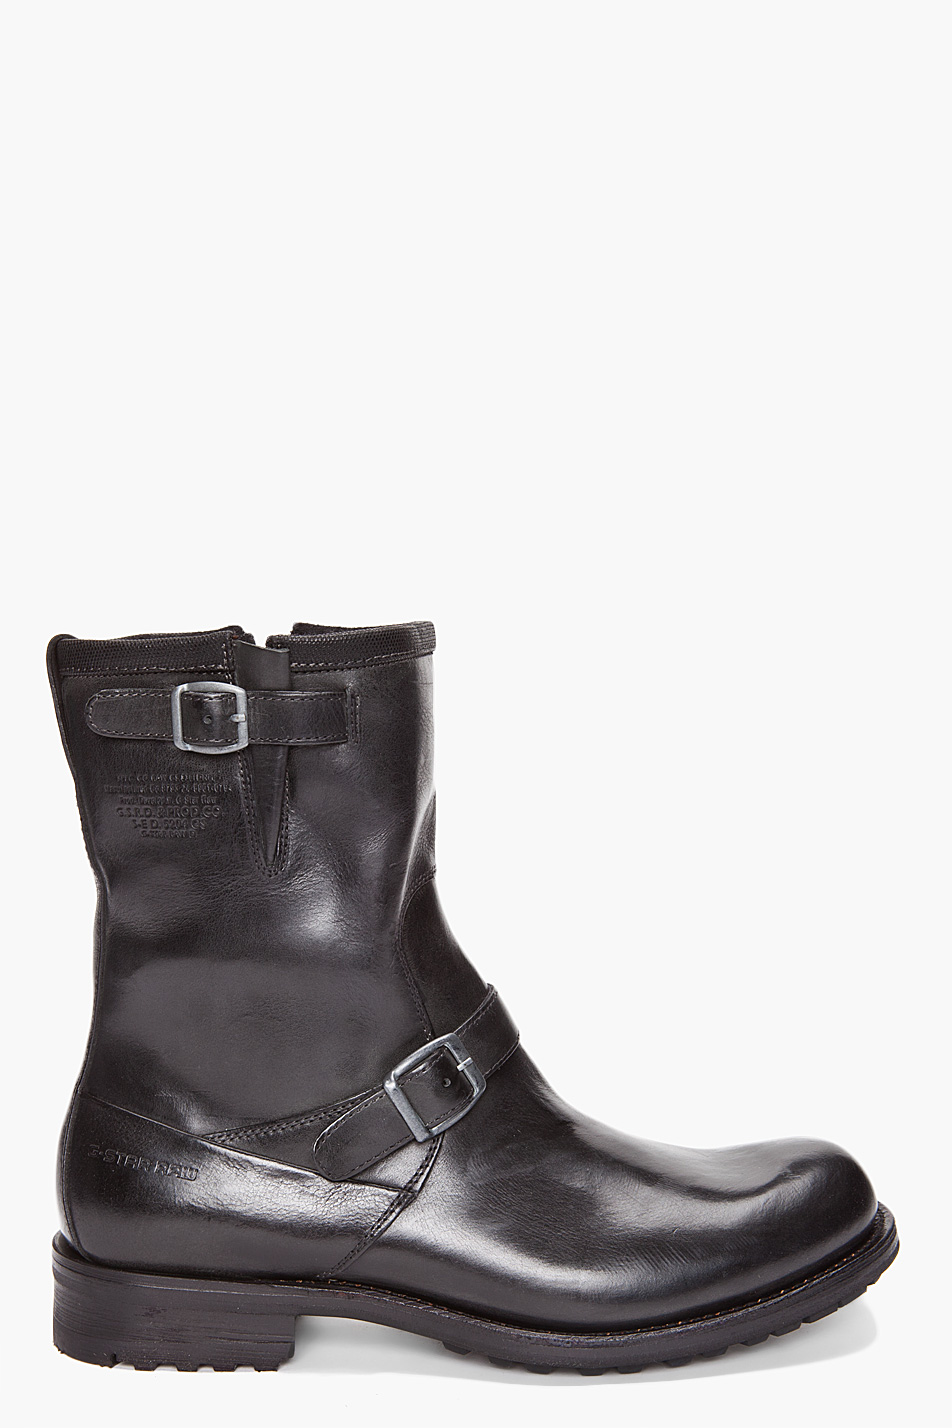 g star raw patton rigger boots in black for men lyst. Black Bedroom Furniture Sets. Home Design Ideas